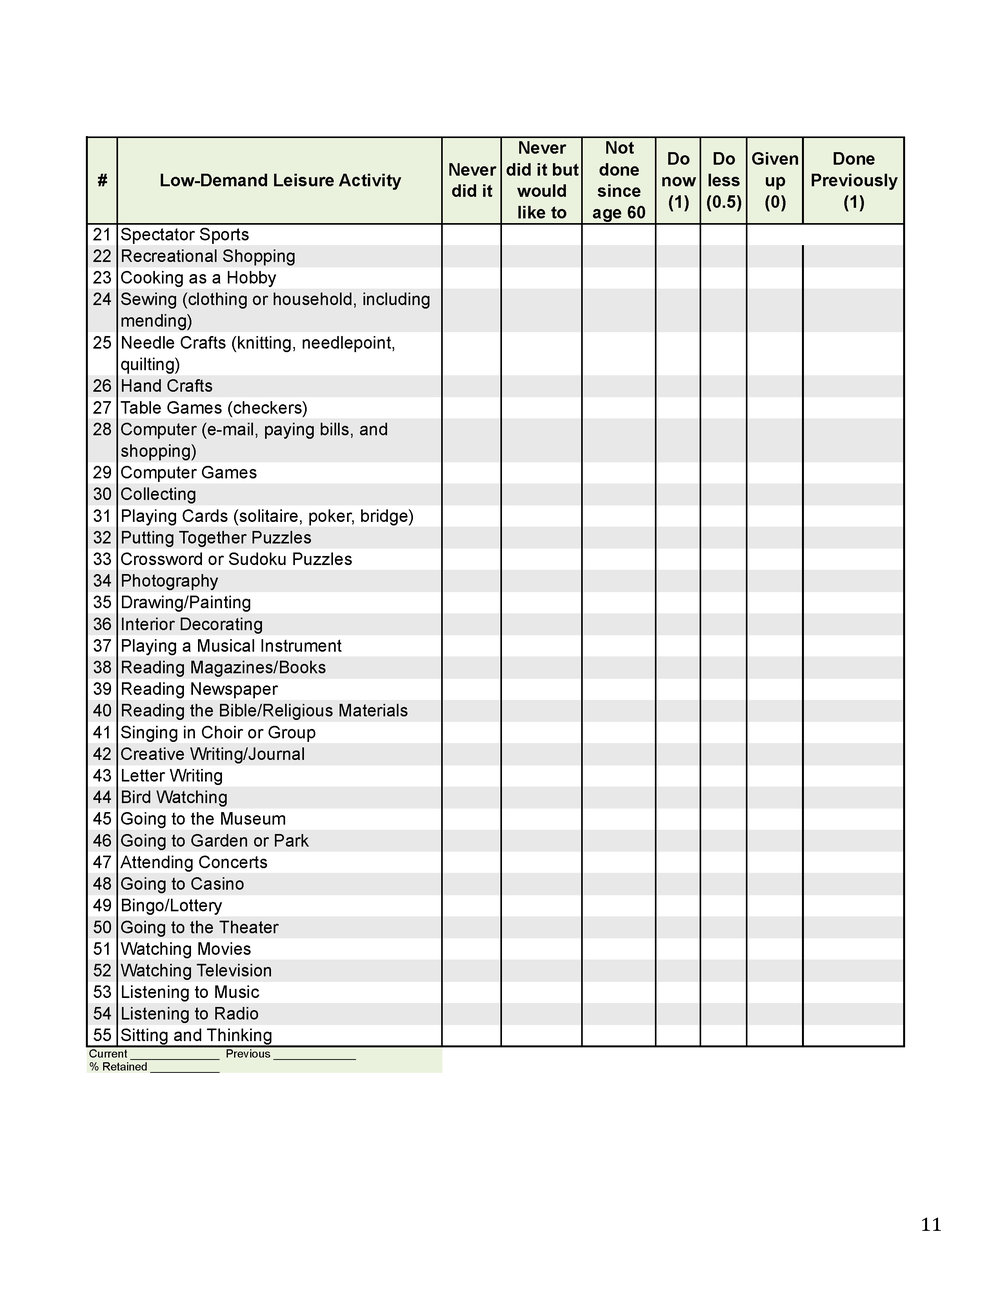 Aging Initiative_Assessment Outline_Sept2015_Page_11.jpg